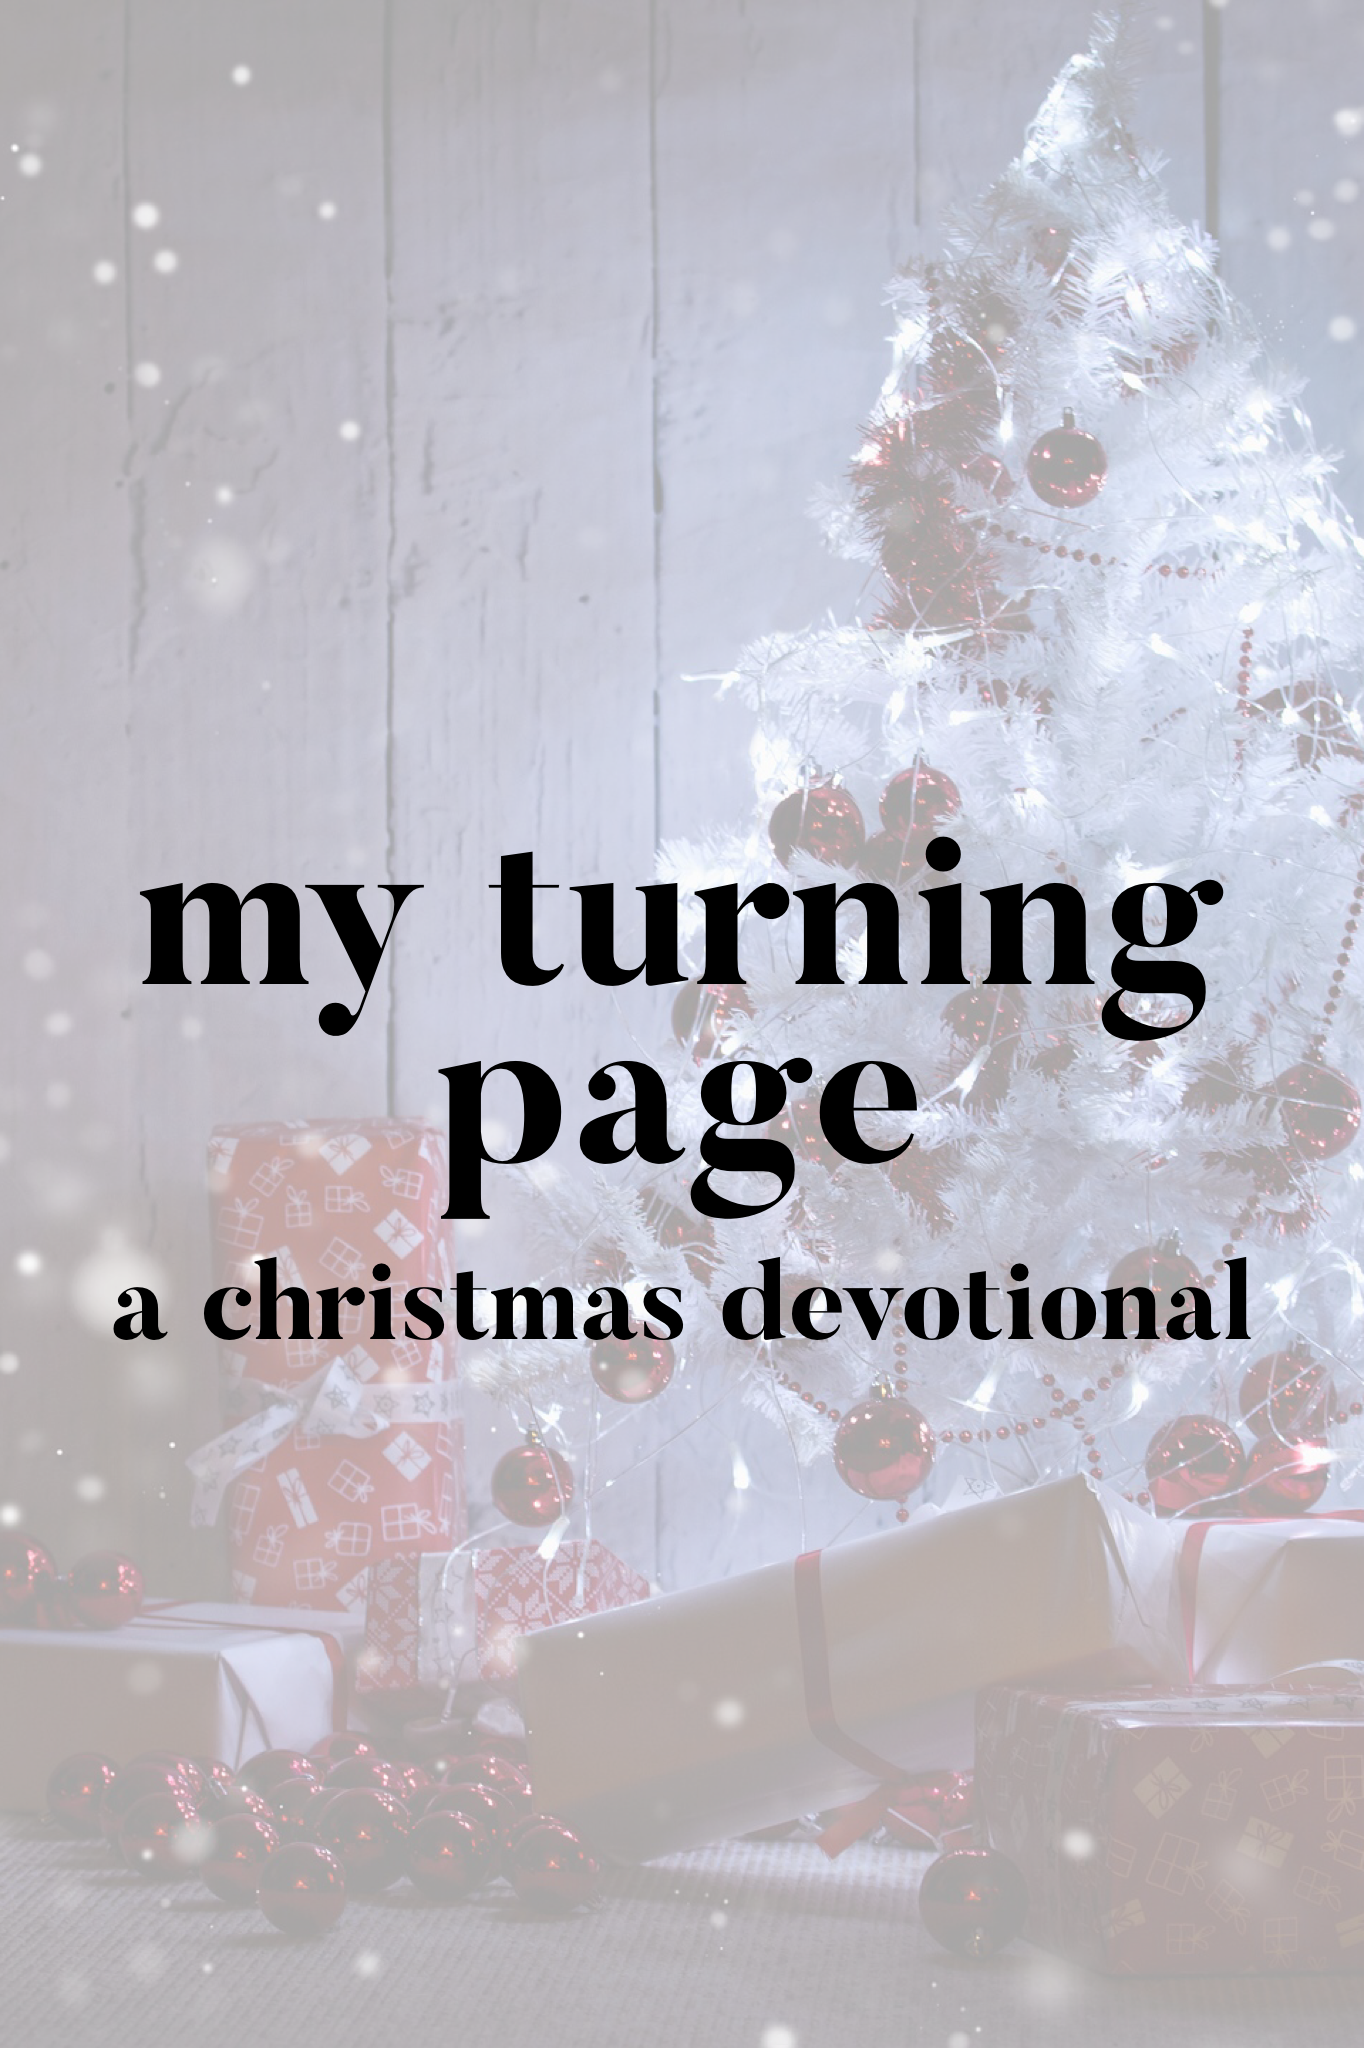 Best Christmas Devotional Ever.My Turning Page A Christmas Devotional Devotional Diva